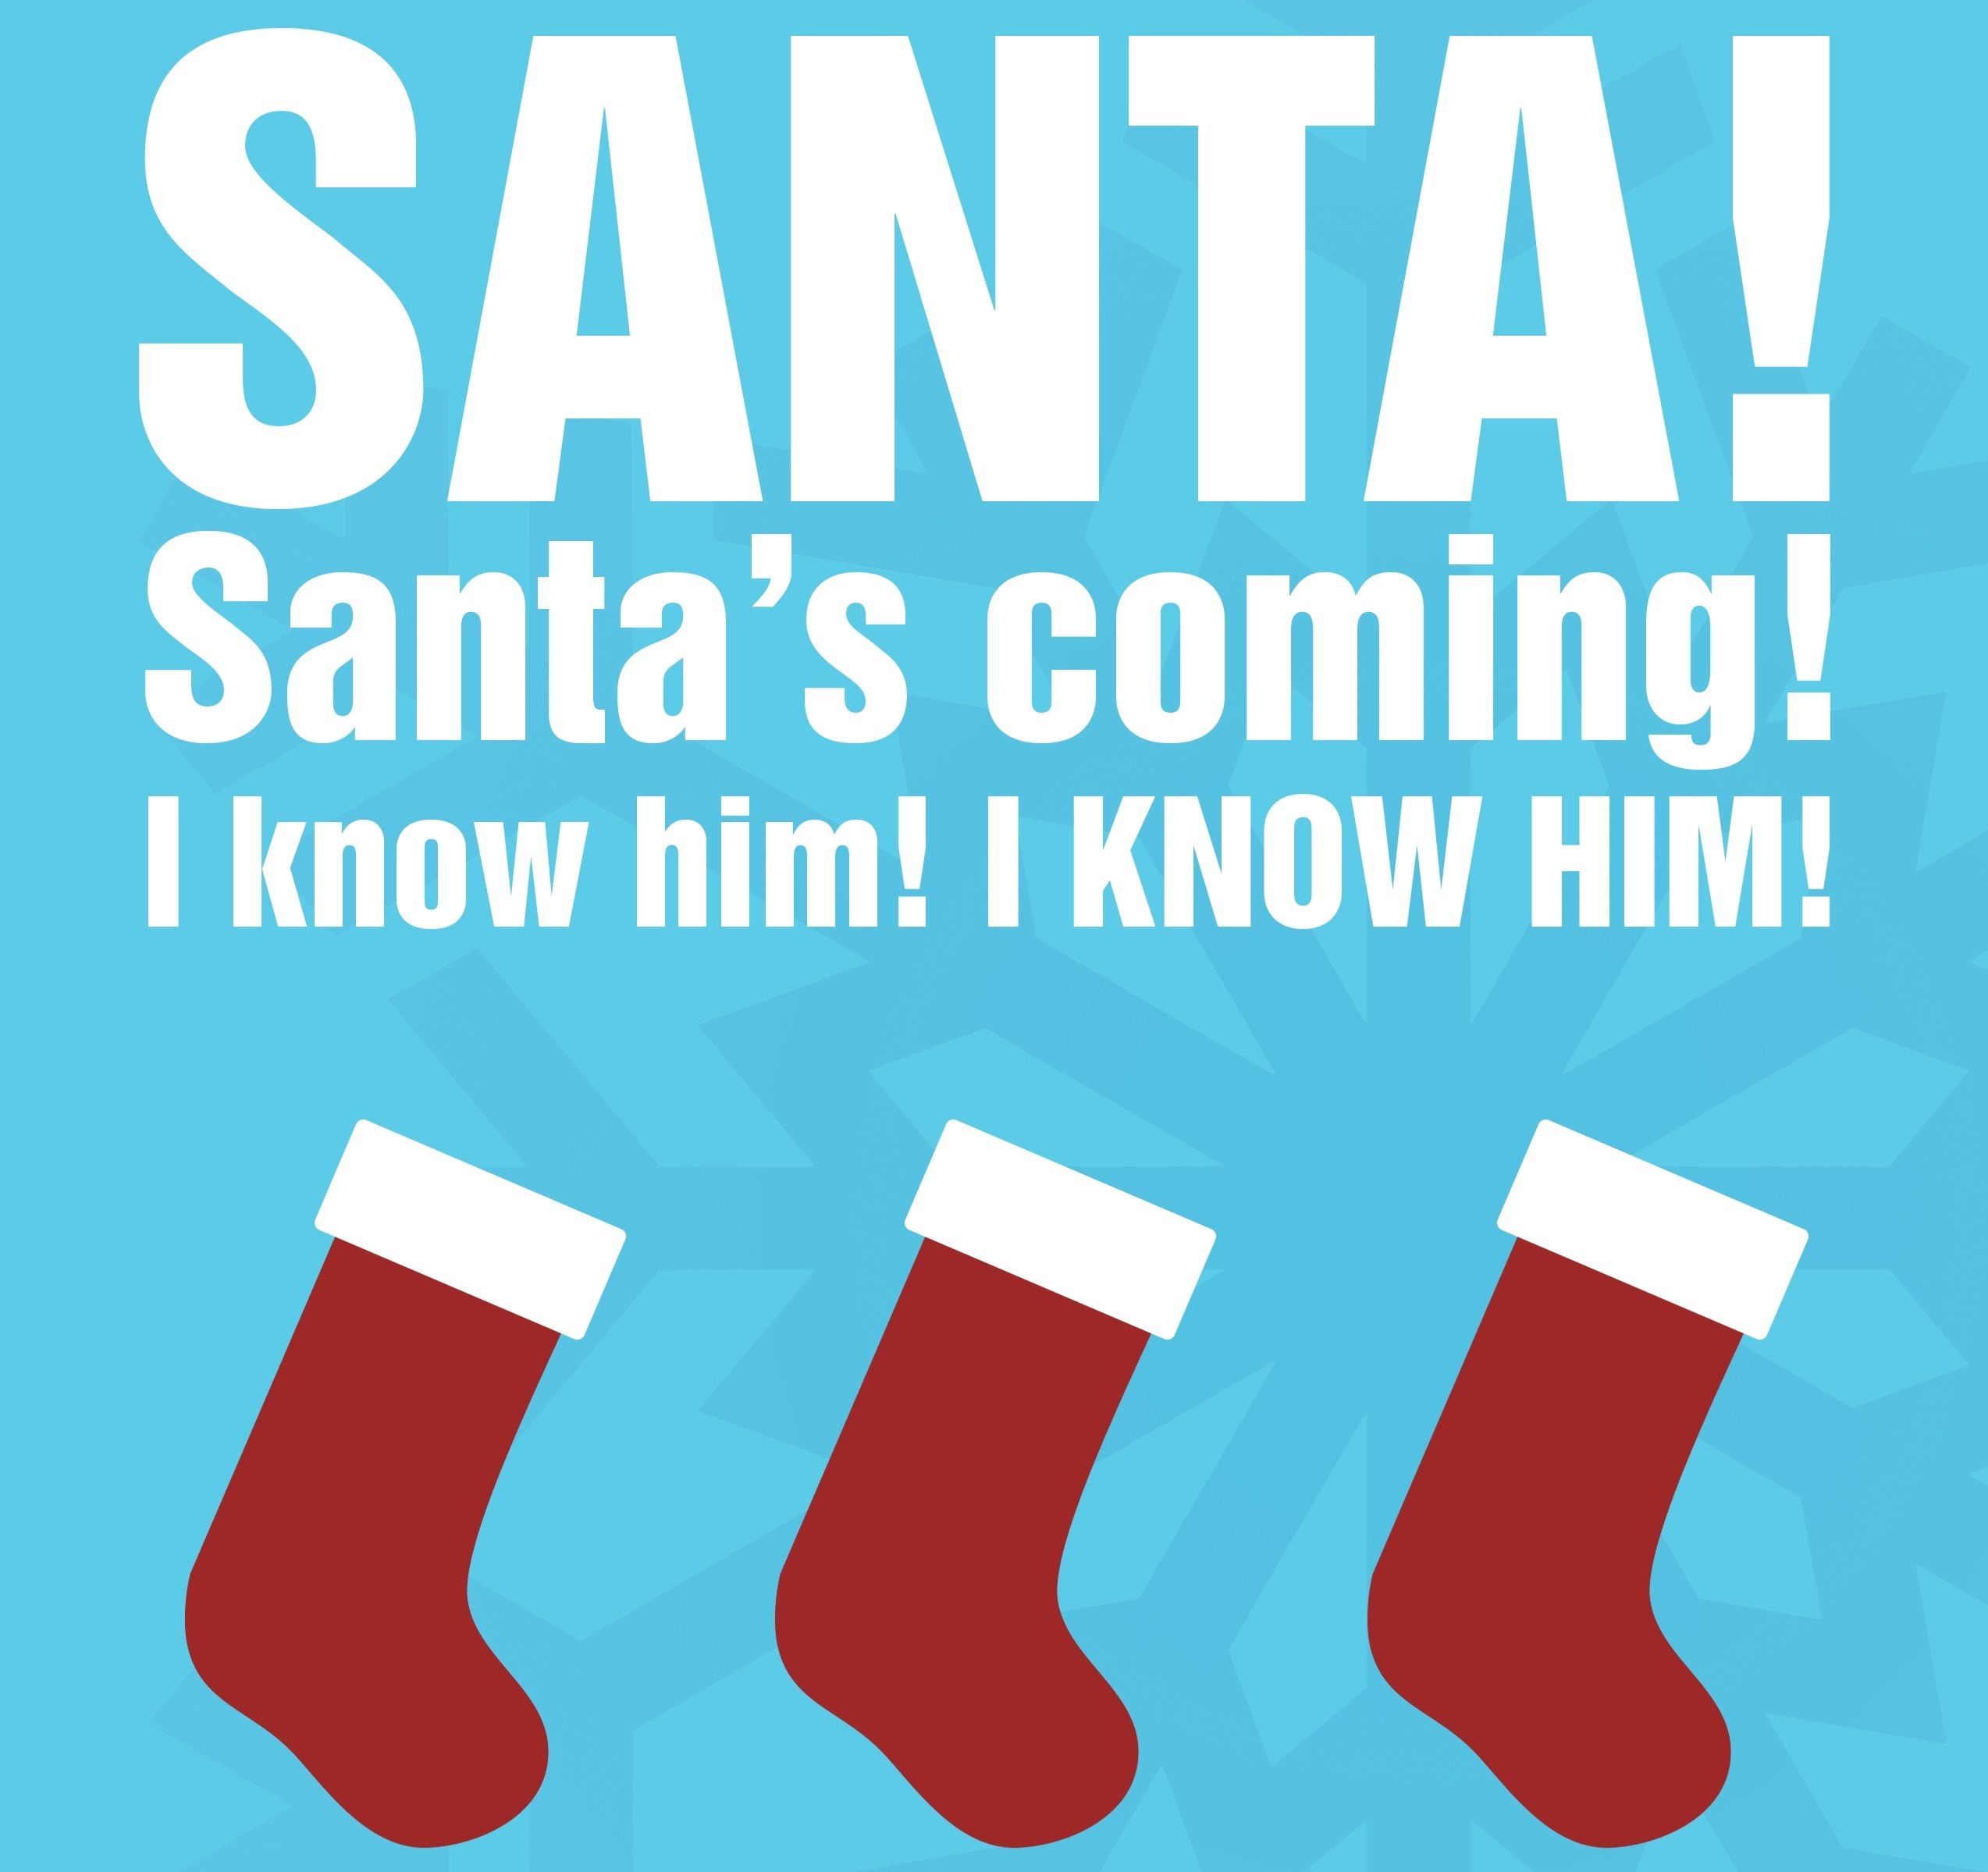 I know him! | Buddy the elf quotes, Elf quotes, Elf movie ...